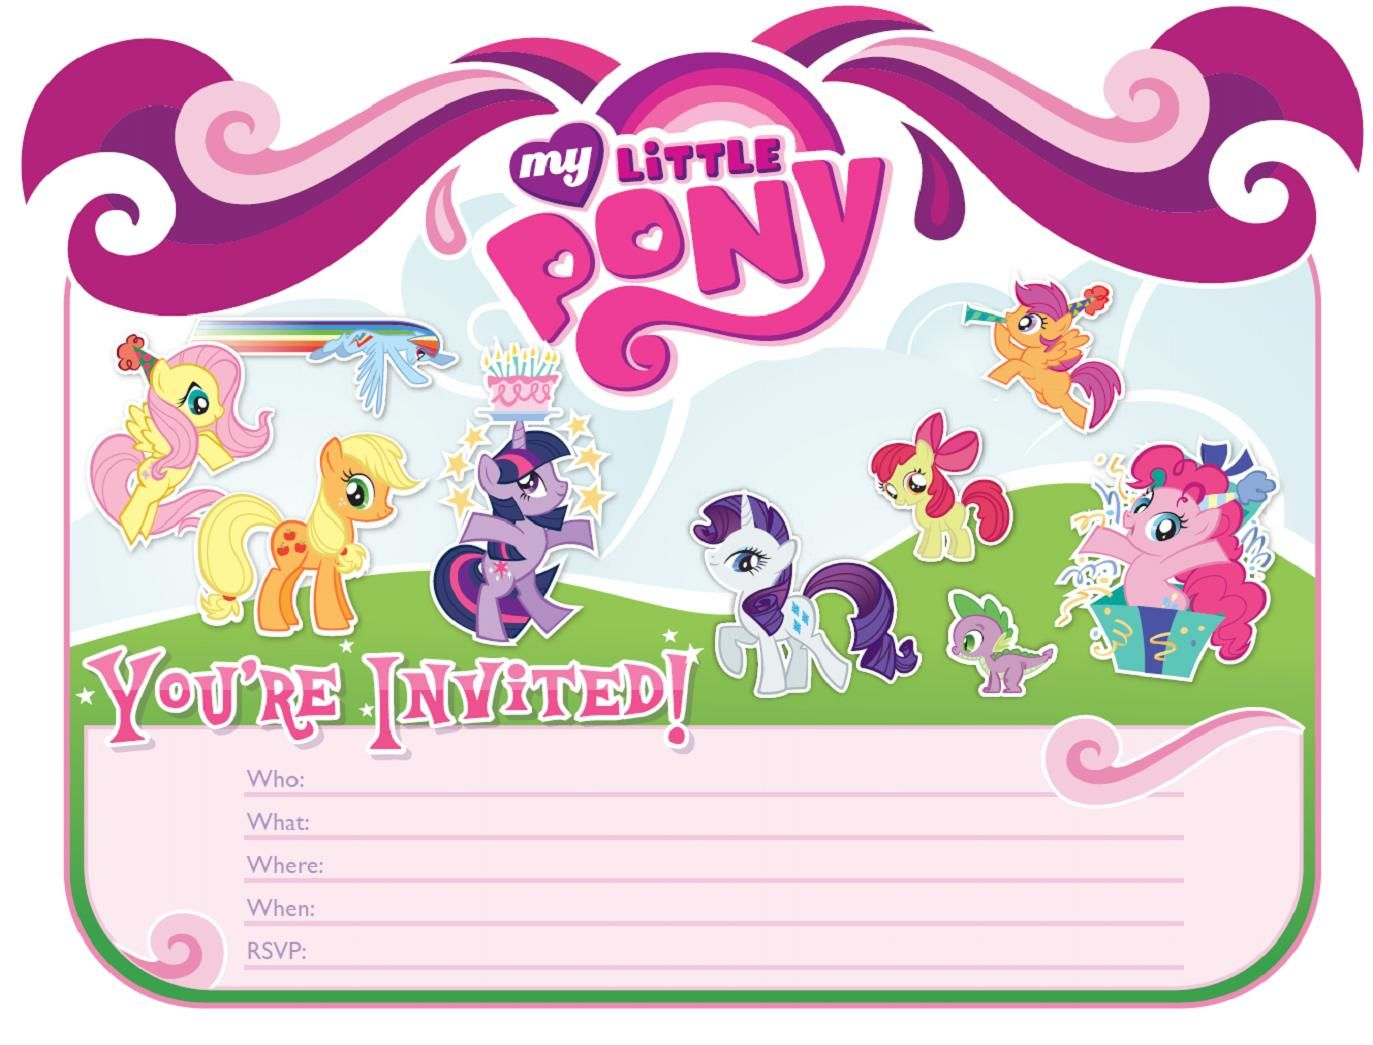 MLP Bday Invitation Template My Little Pony Themed Bday